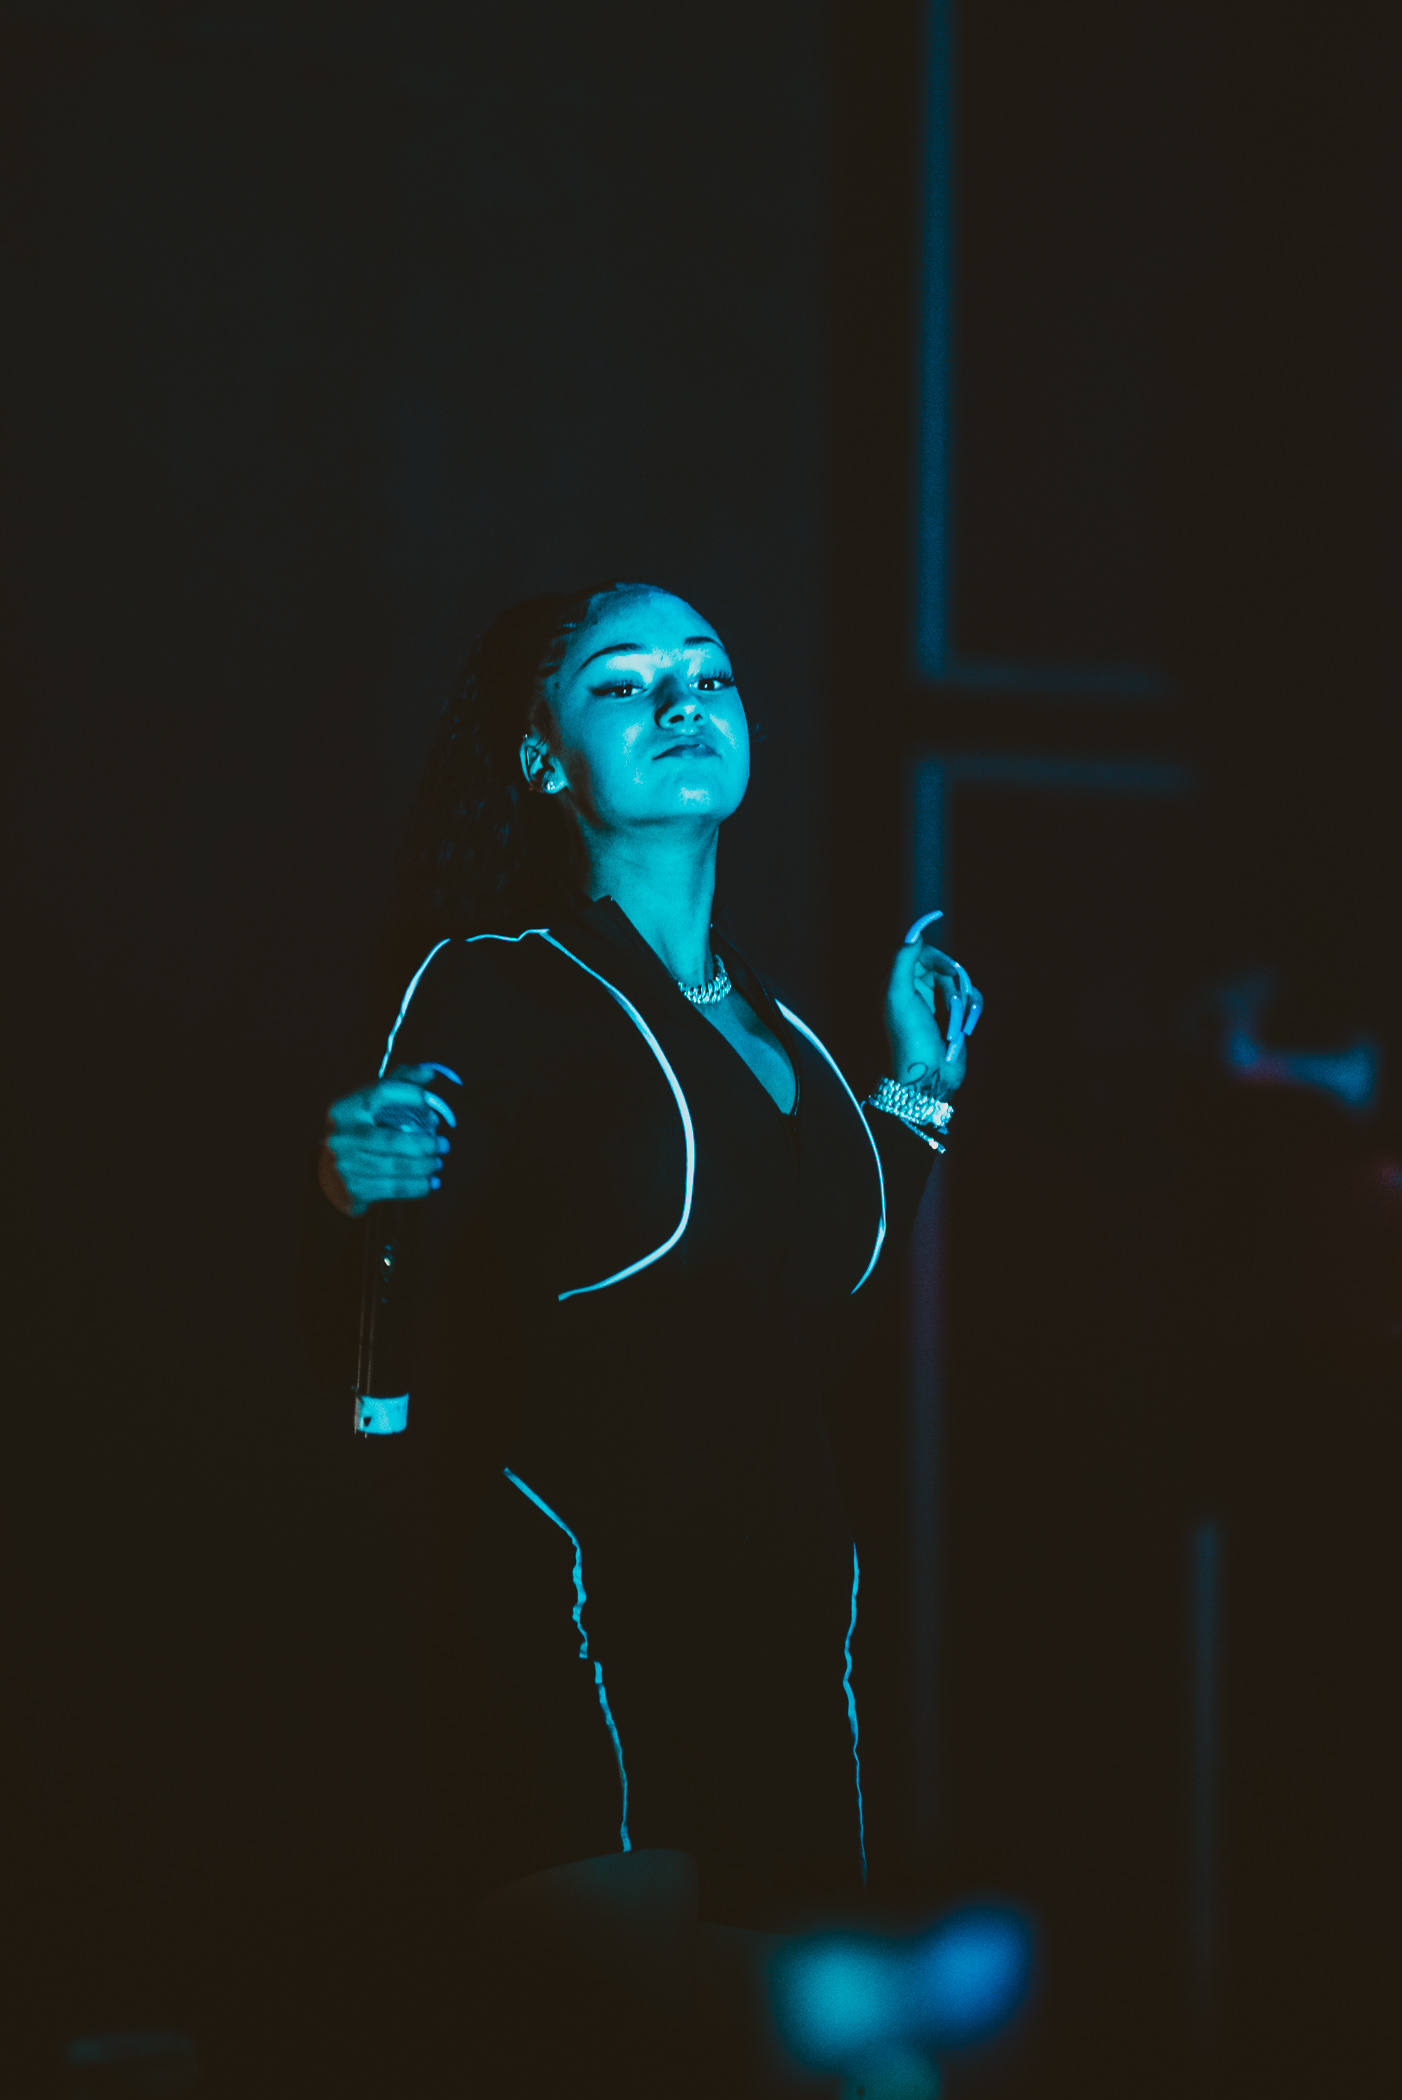 1_Bhad_Bhabie-VENUE-Timothy_Nguyen-20190510 (18 of 45).JPG